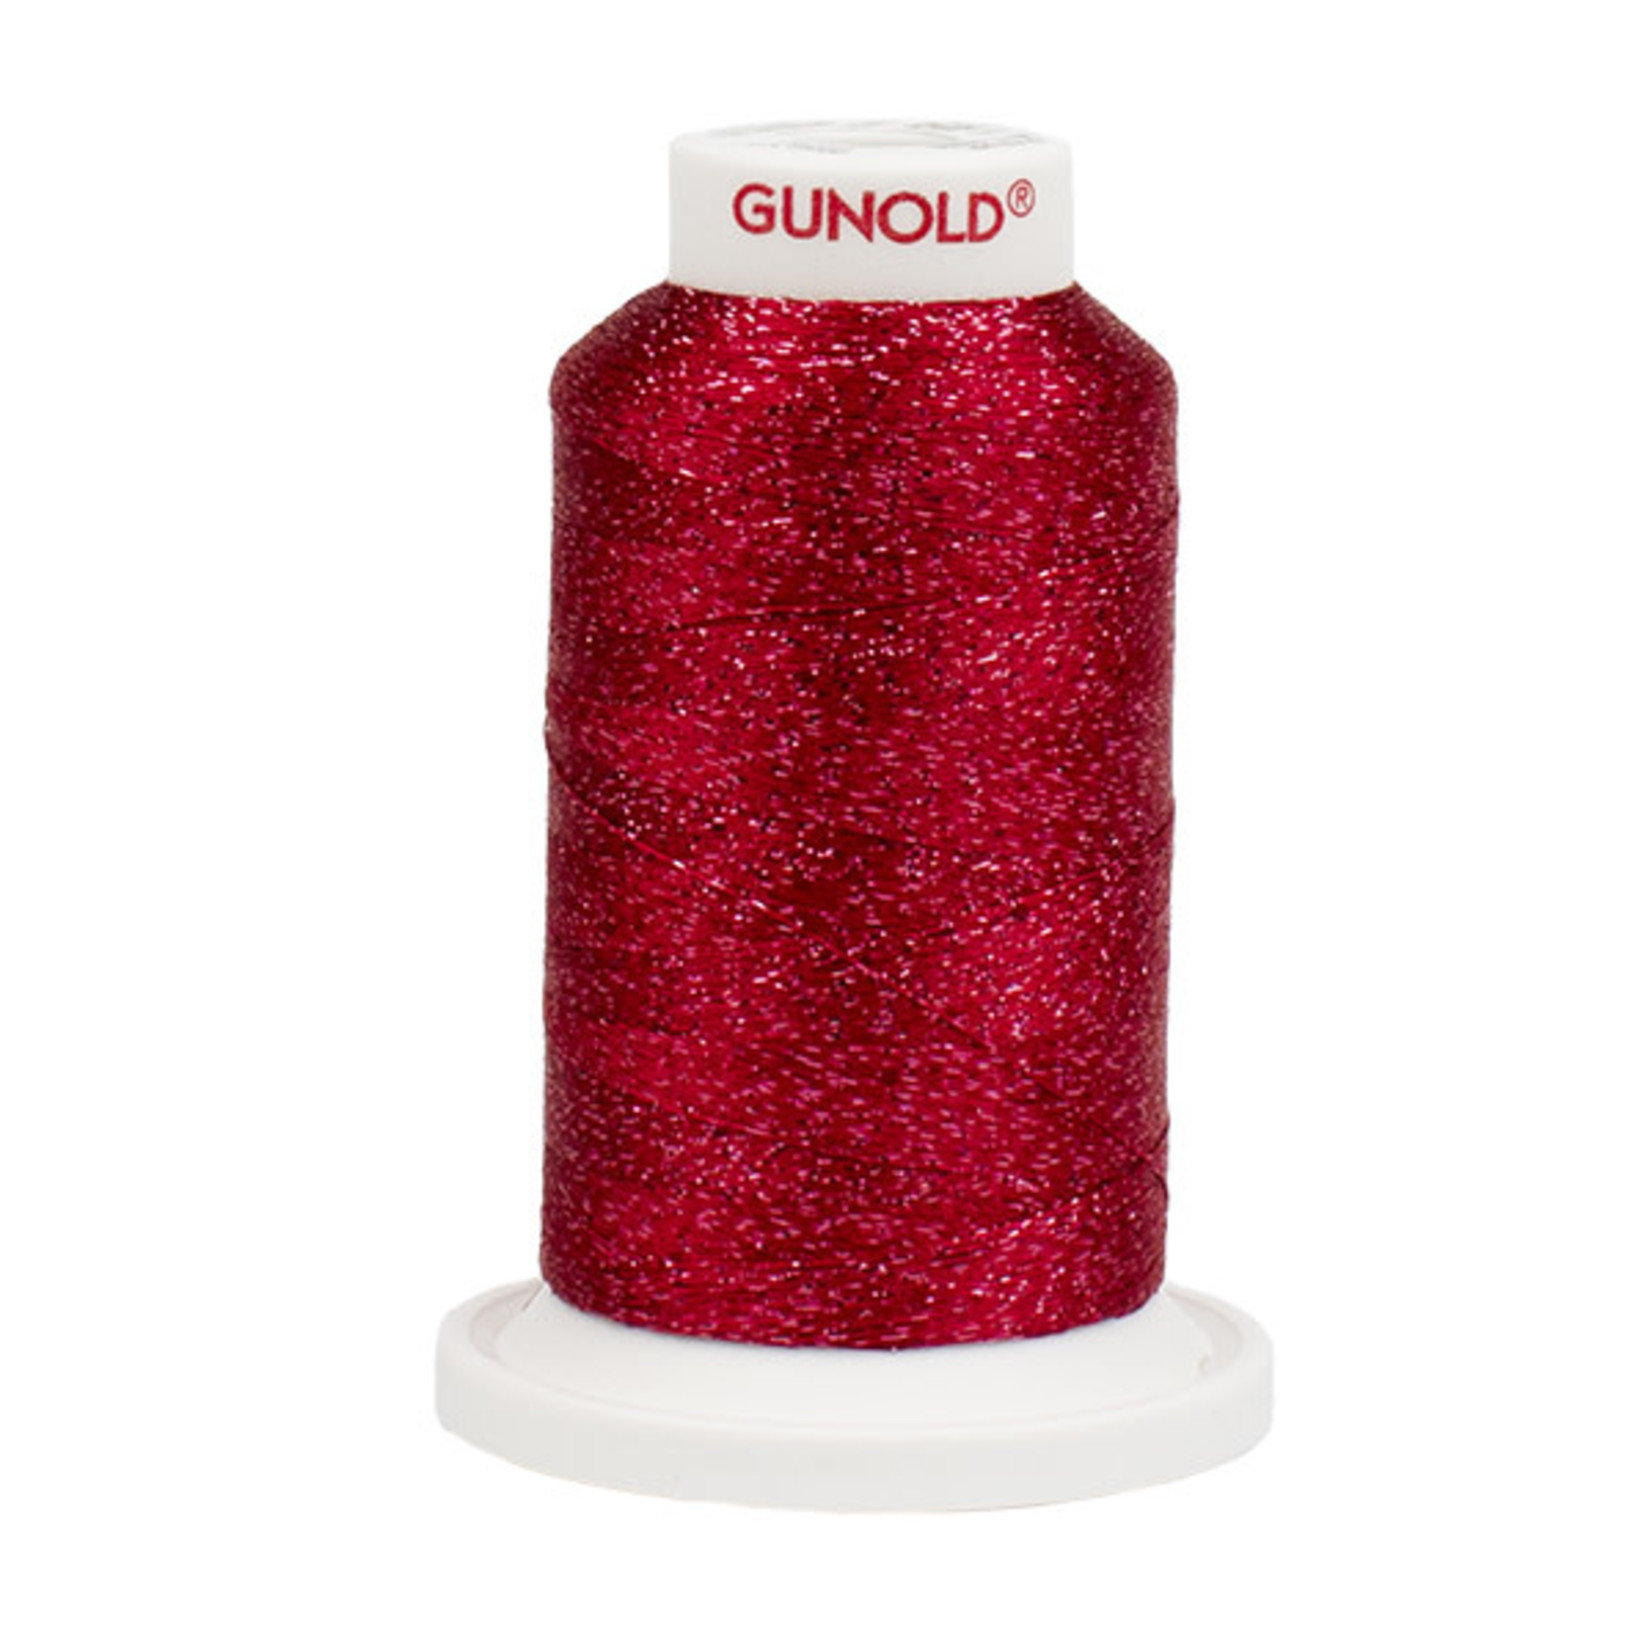 Gunold Poly Sparkle™ (Star™) Mini-King Cone 1,100 YD, 30 Wt, Burgundy with Tone On Tone Sparkle 50906